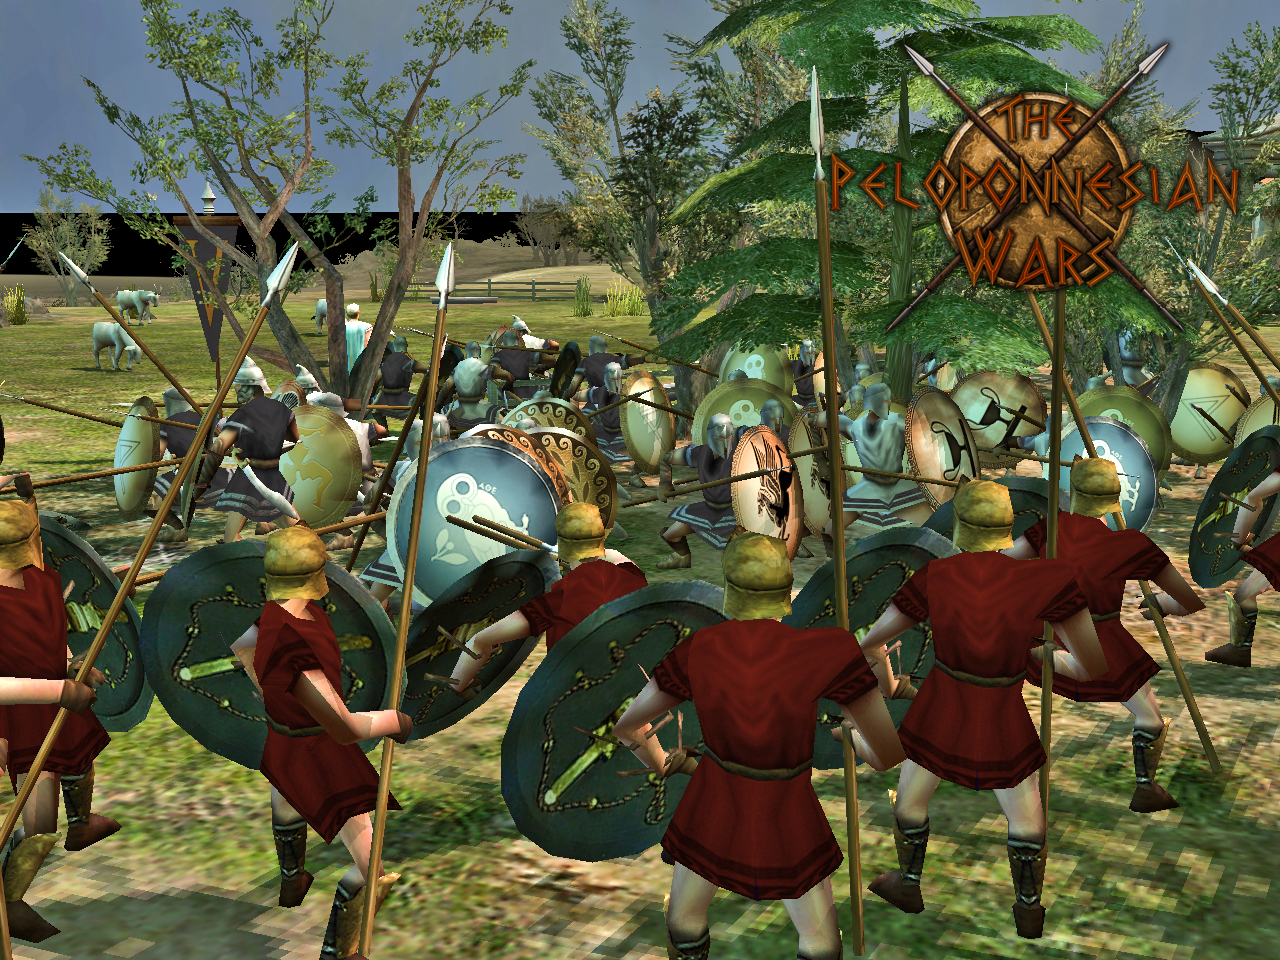 the inevitable war in the case of the peloponnesian war This was a long drawn out war between athens and sparta and their  he  believed that the peloponnesian war was inevitable, because when a rising  a  chain of event that led to the spartan invasion of athenian territory.